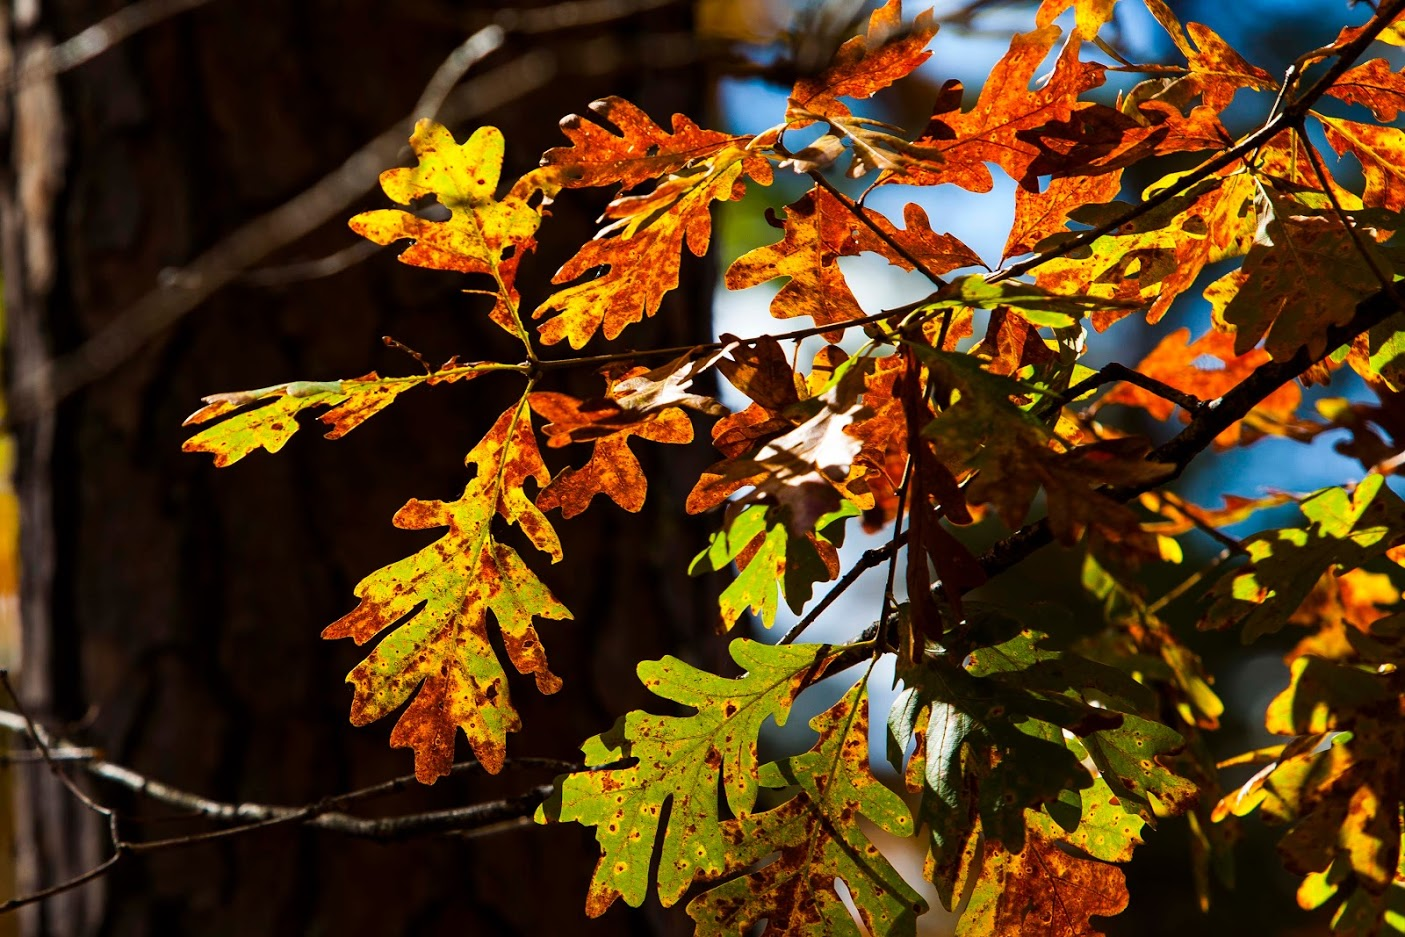 Up Close with Spartanburg's Fall Foliage